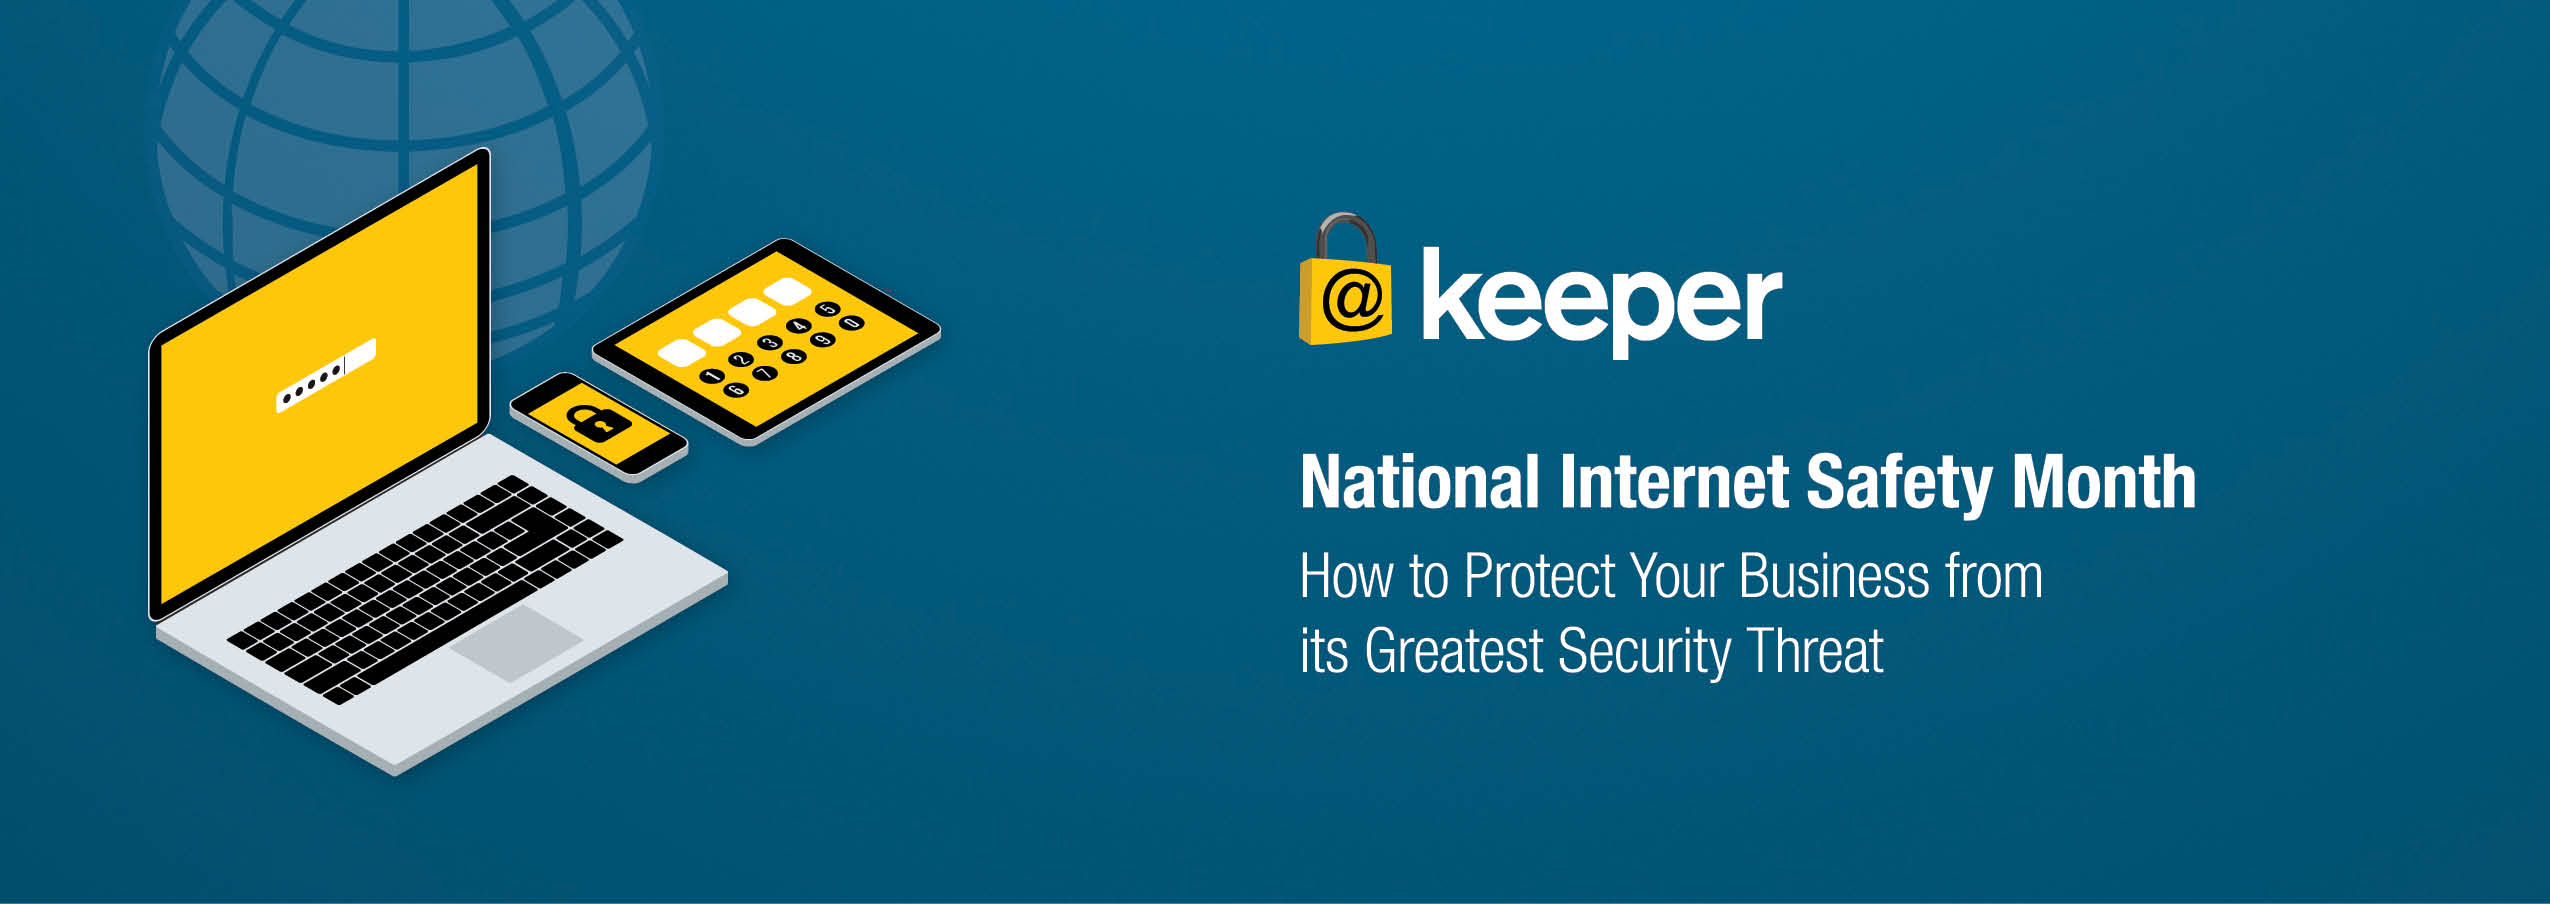 How to Protect Your Business from its Greatest Security Threat – National Internet Safety Month